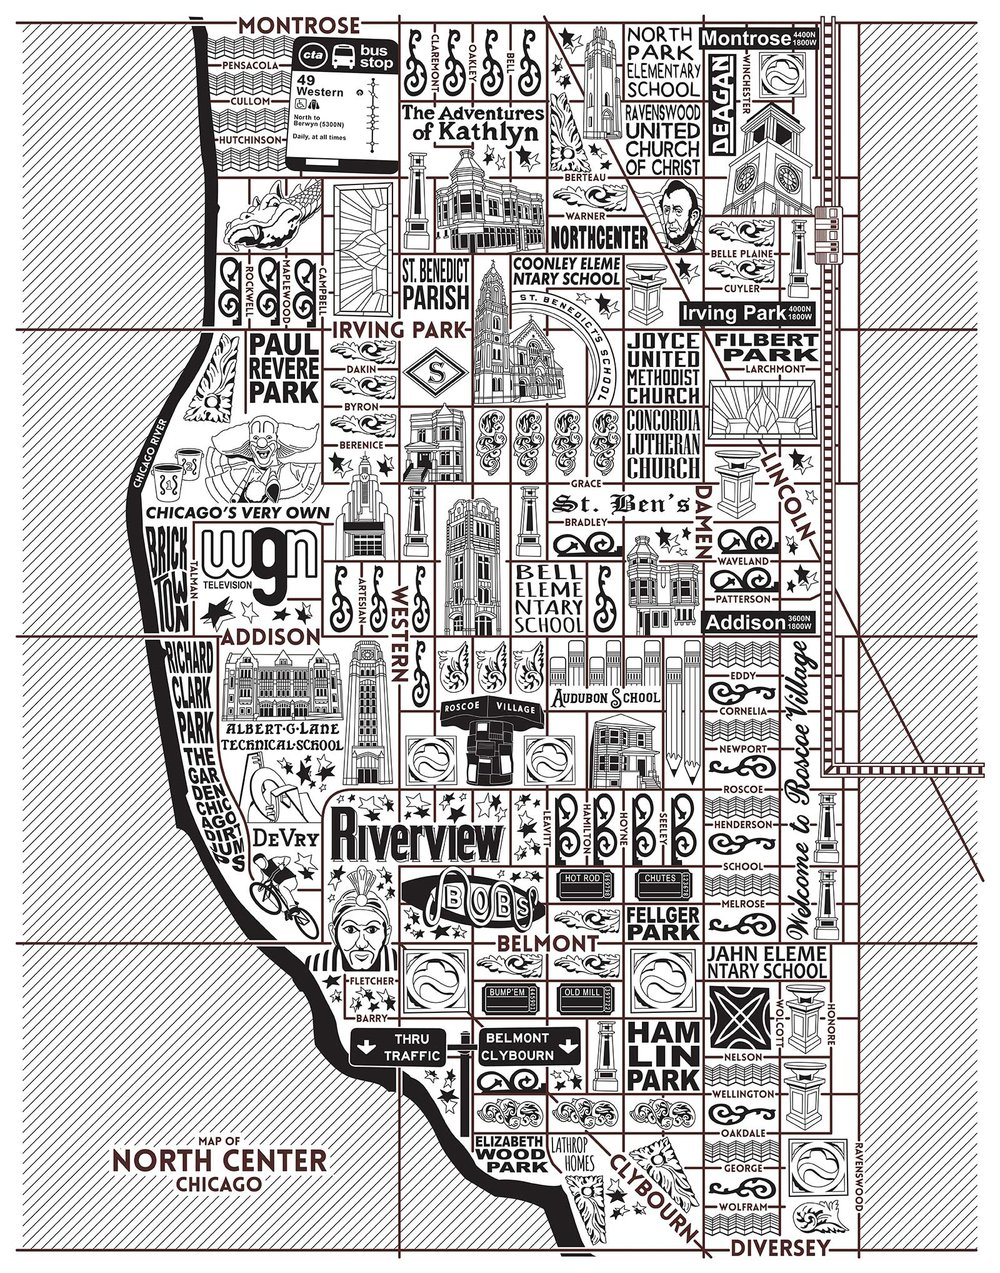 North Center Map -  Purchase a map here